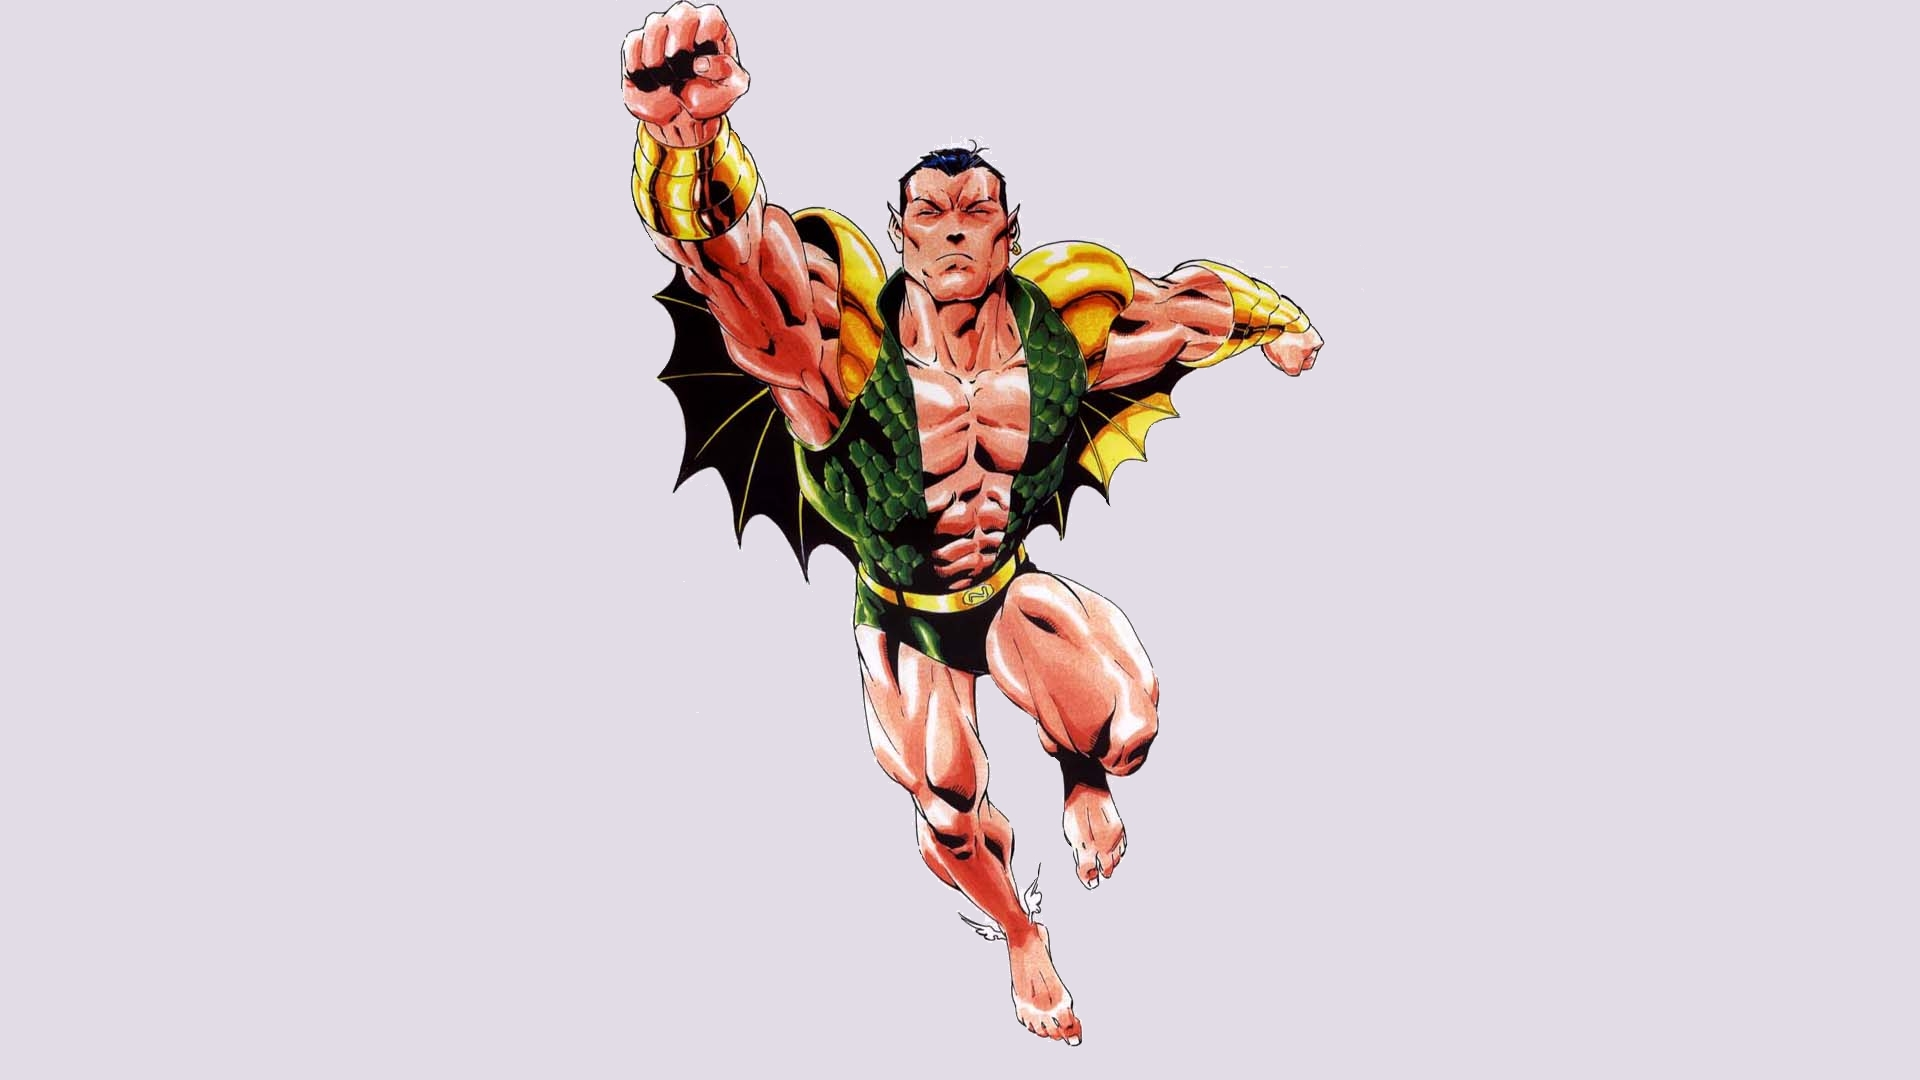 Namor HD Wallpaper Background Image 1920x1080 ID478207 1920x1080